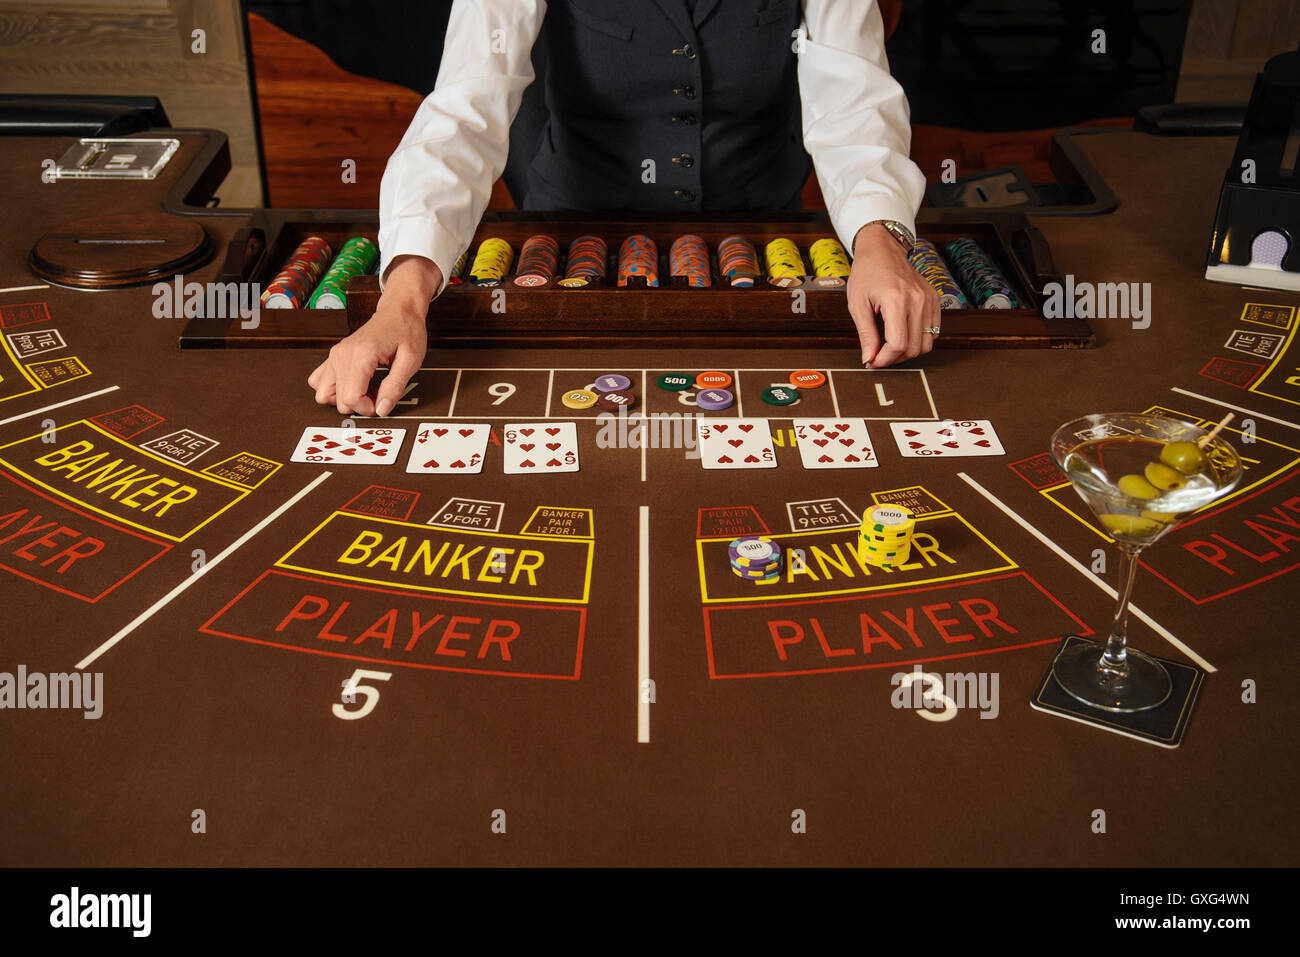 Nevada Casino Dealer High Resolution Stock Photography And Images Alamy